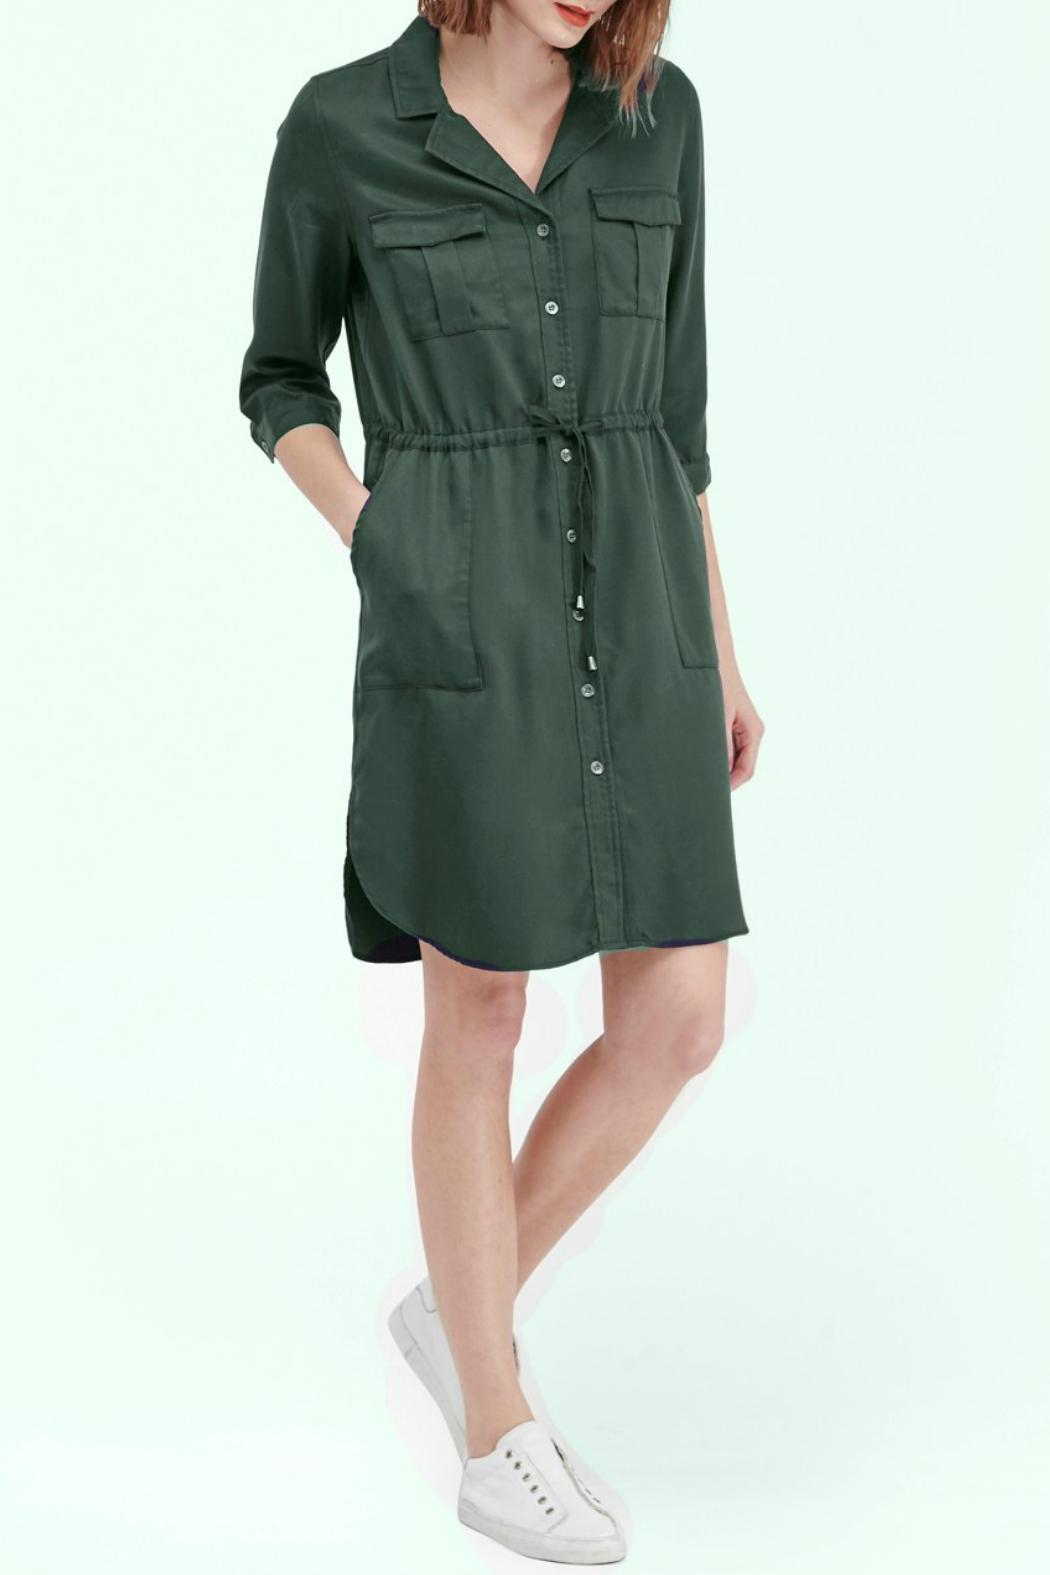 French connection kruger shirt dress from canada by envy for French connection shirt dress